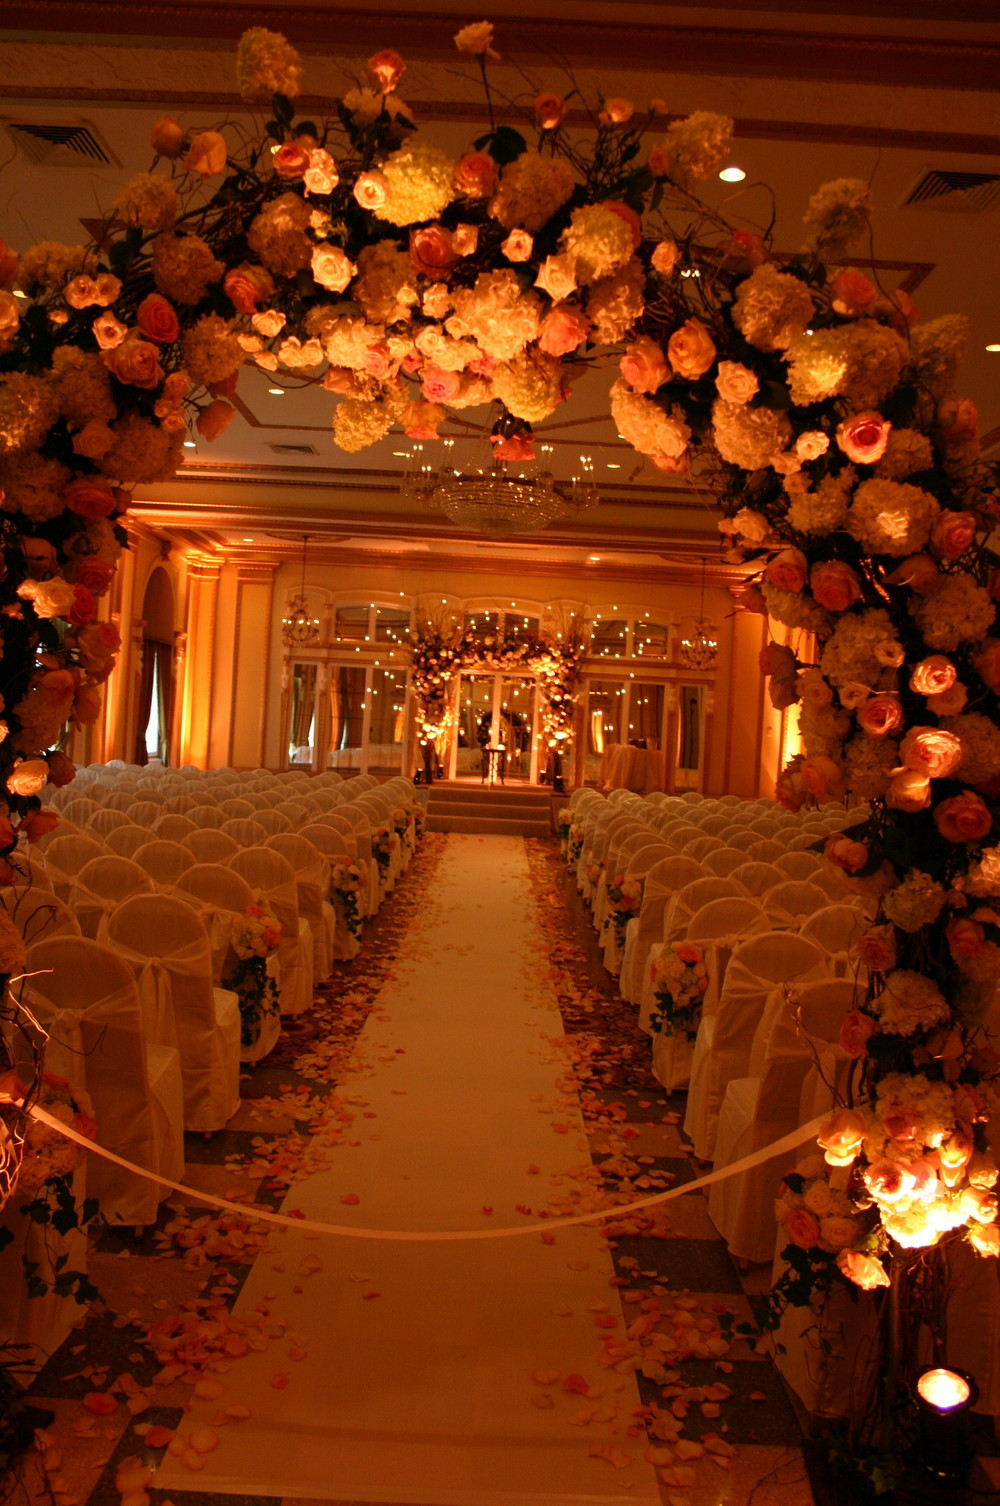 Wedding Arch and Chuppah in the Ventian Room at The Peabody Hotel.  Hydrangea, Roses and Lisianthus.